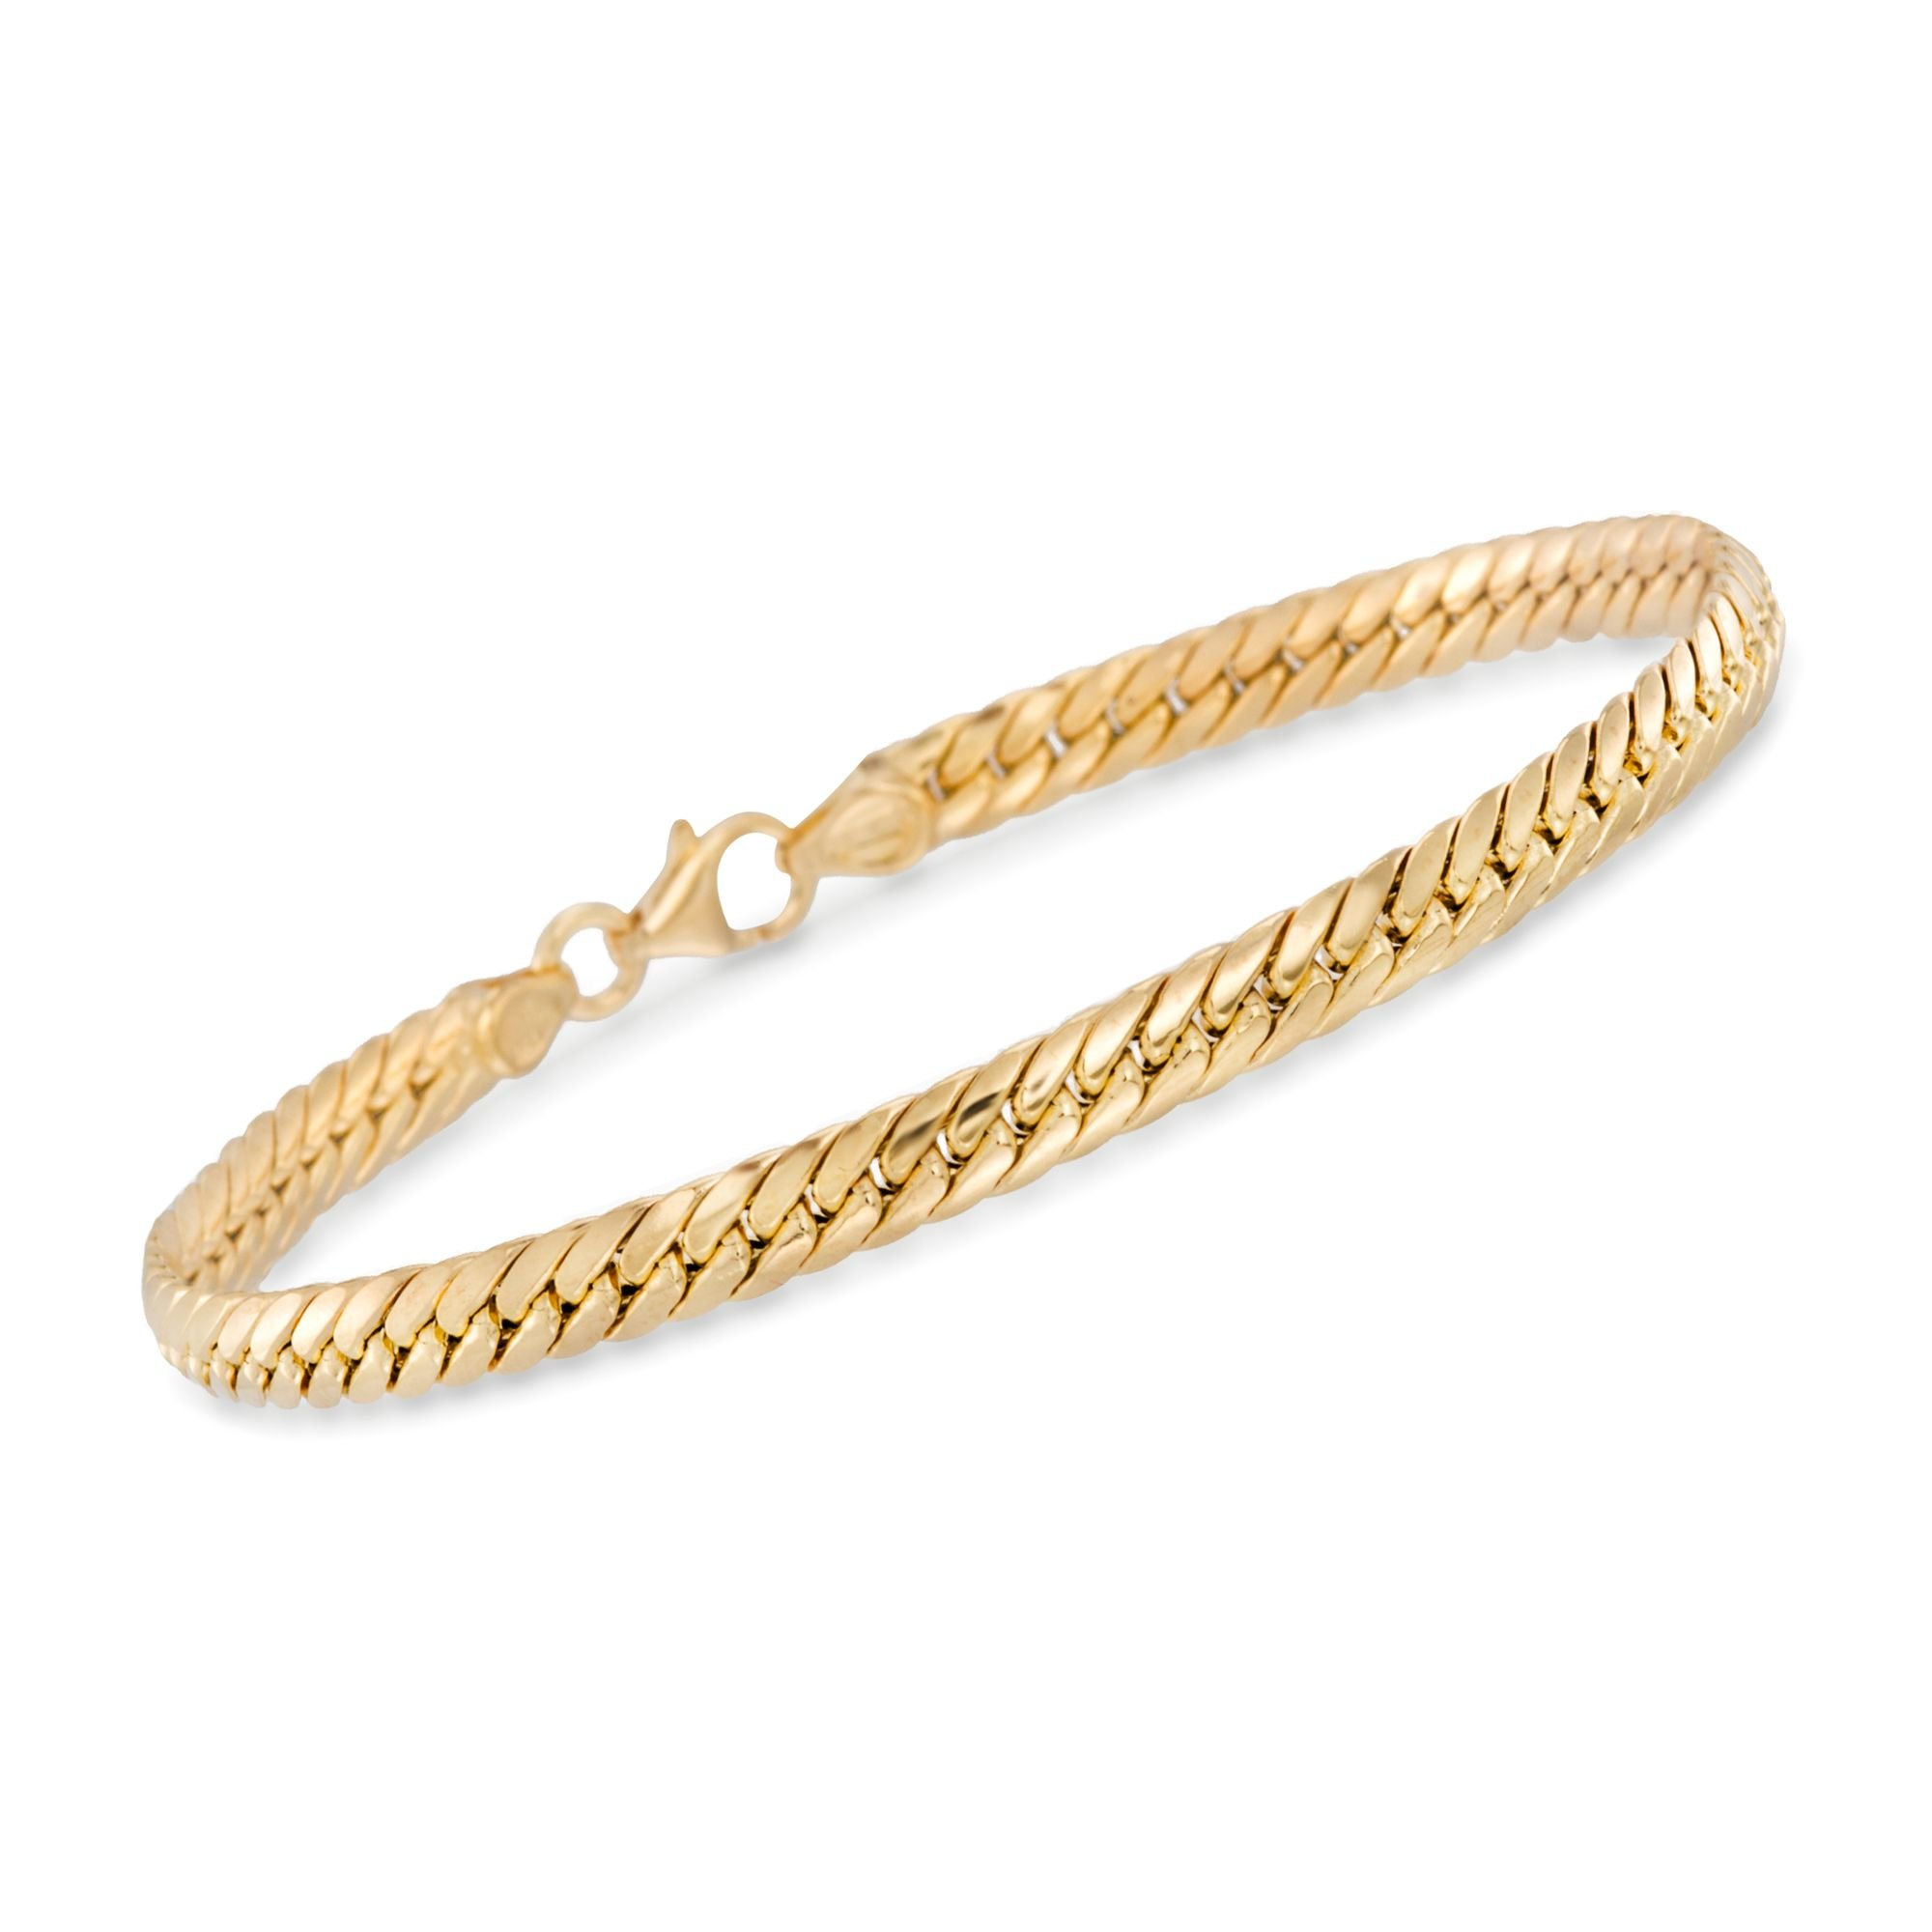 Ross-Simons 14kt Yellow Gold Curb-Link Bracelet, Made in Italy, Includes Presentation Box